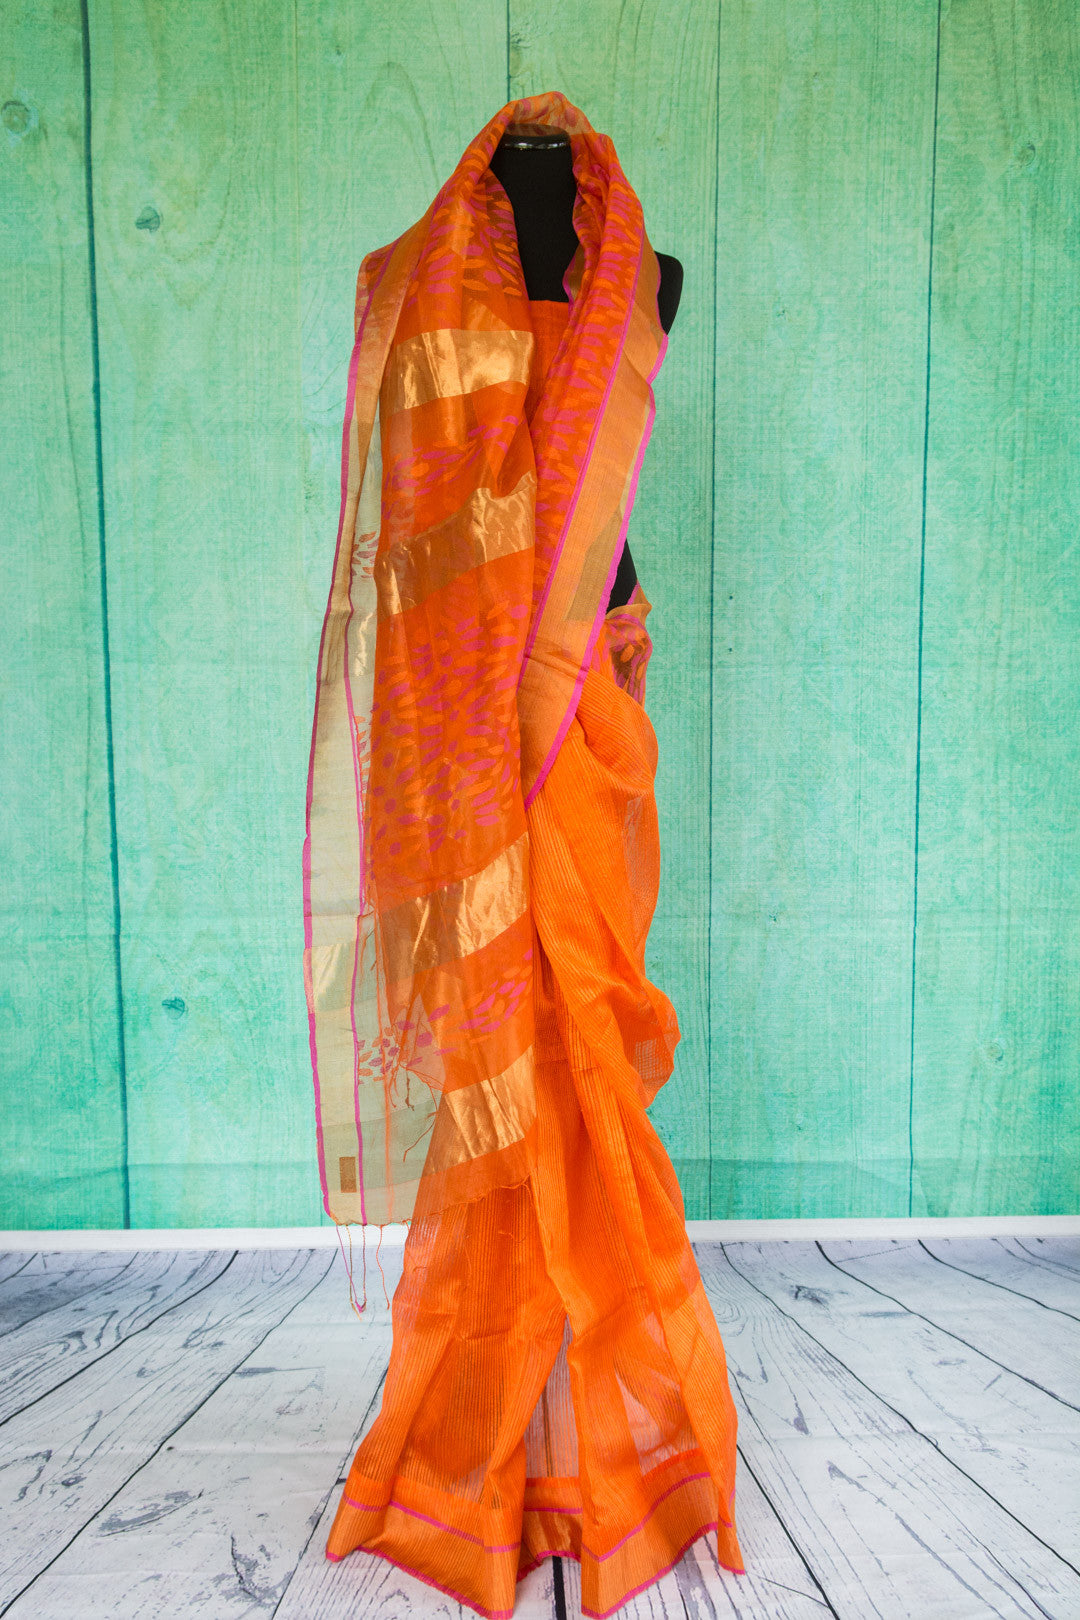 90c009 Orange matka silk saree with a golden border with pink trim. Buy this ethnic saree at our store Pure Elegance in USA. This wonderfully versatile saree is a must-have this season!